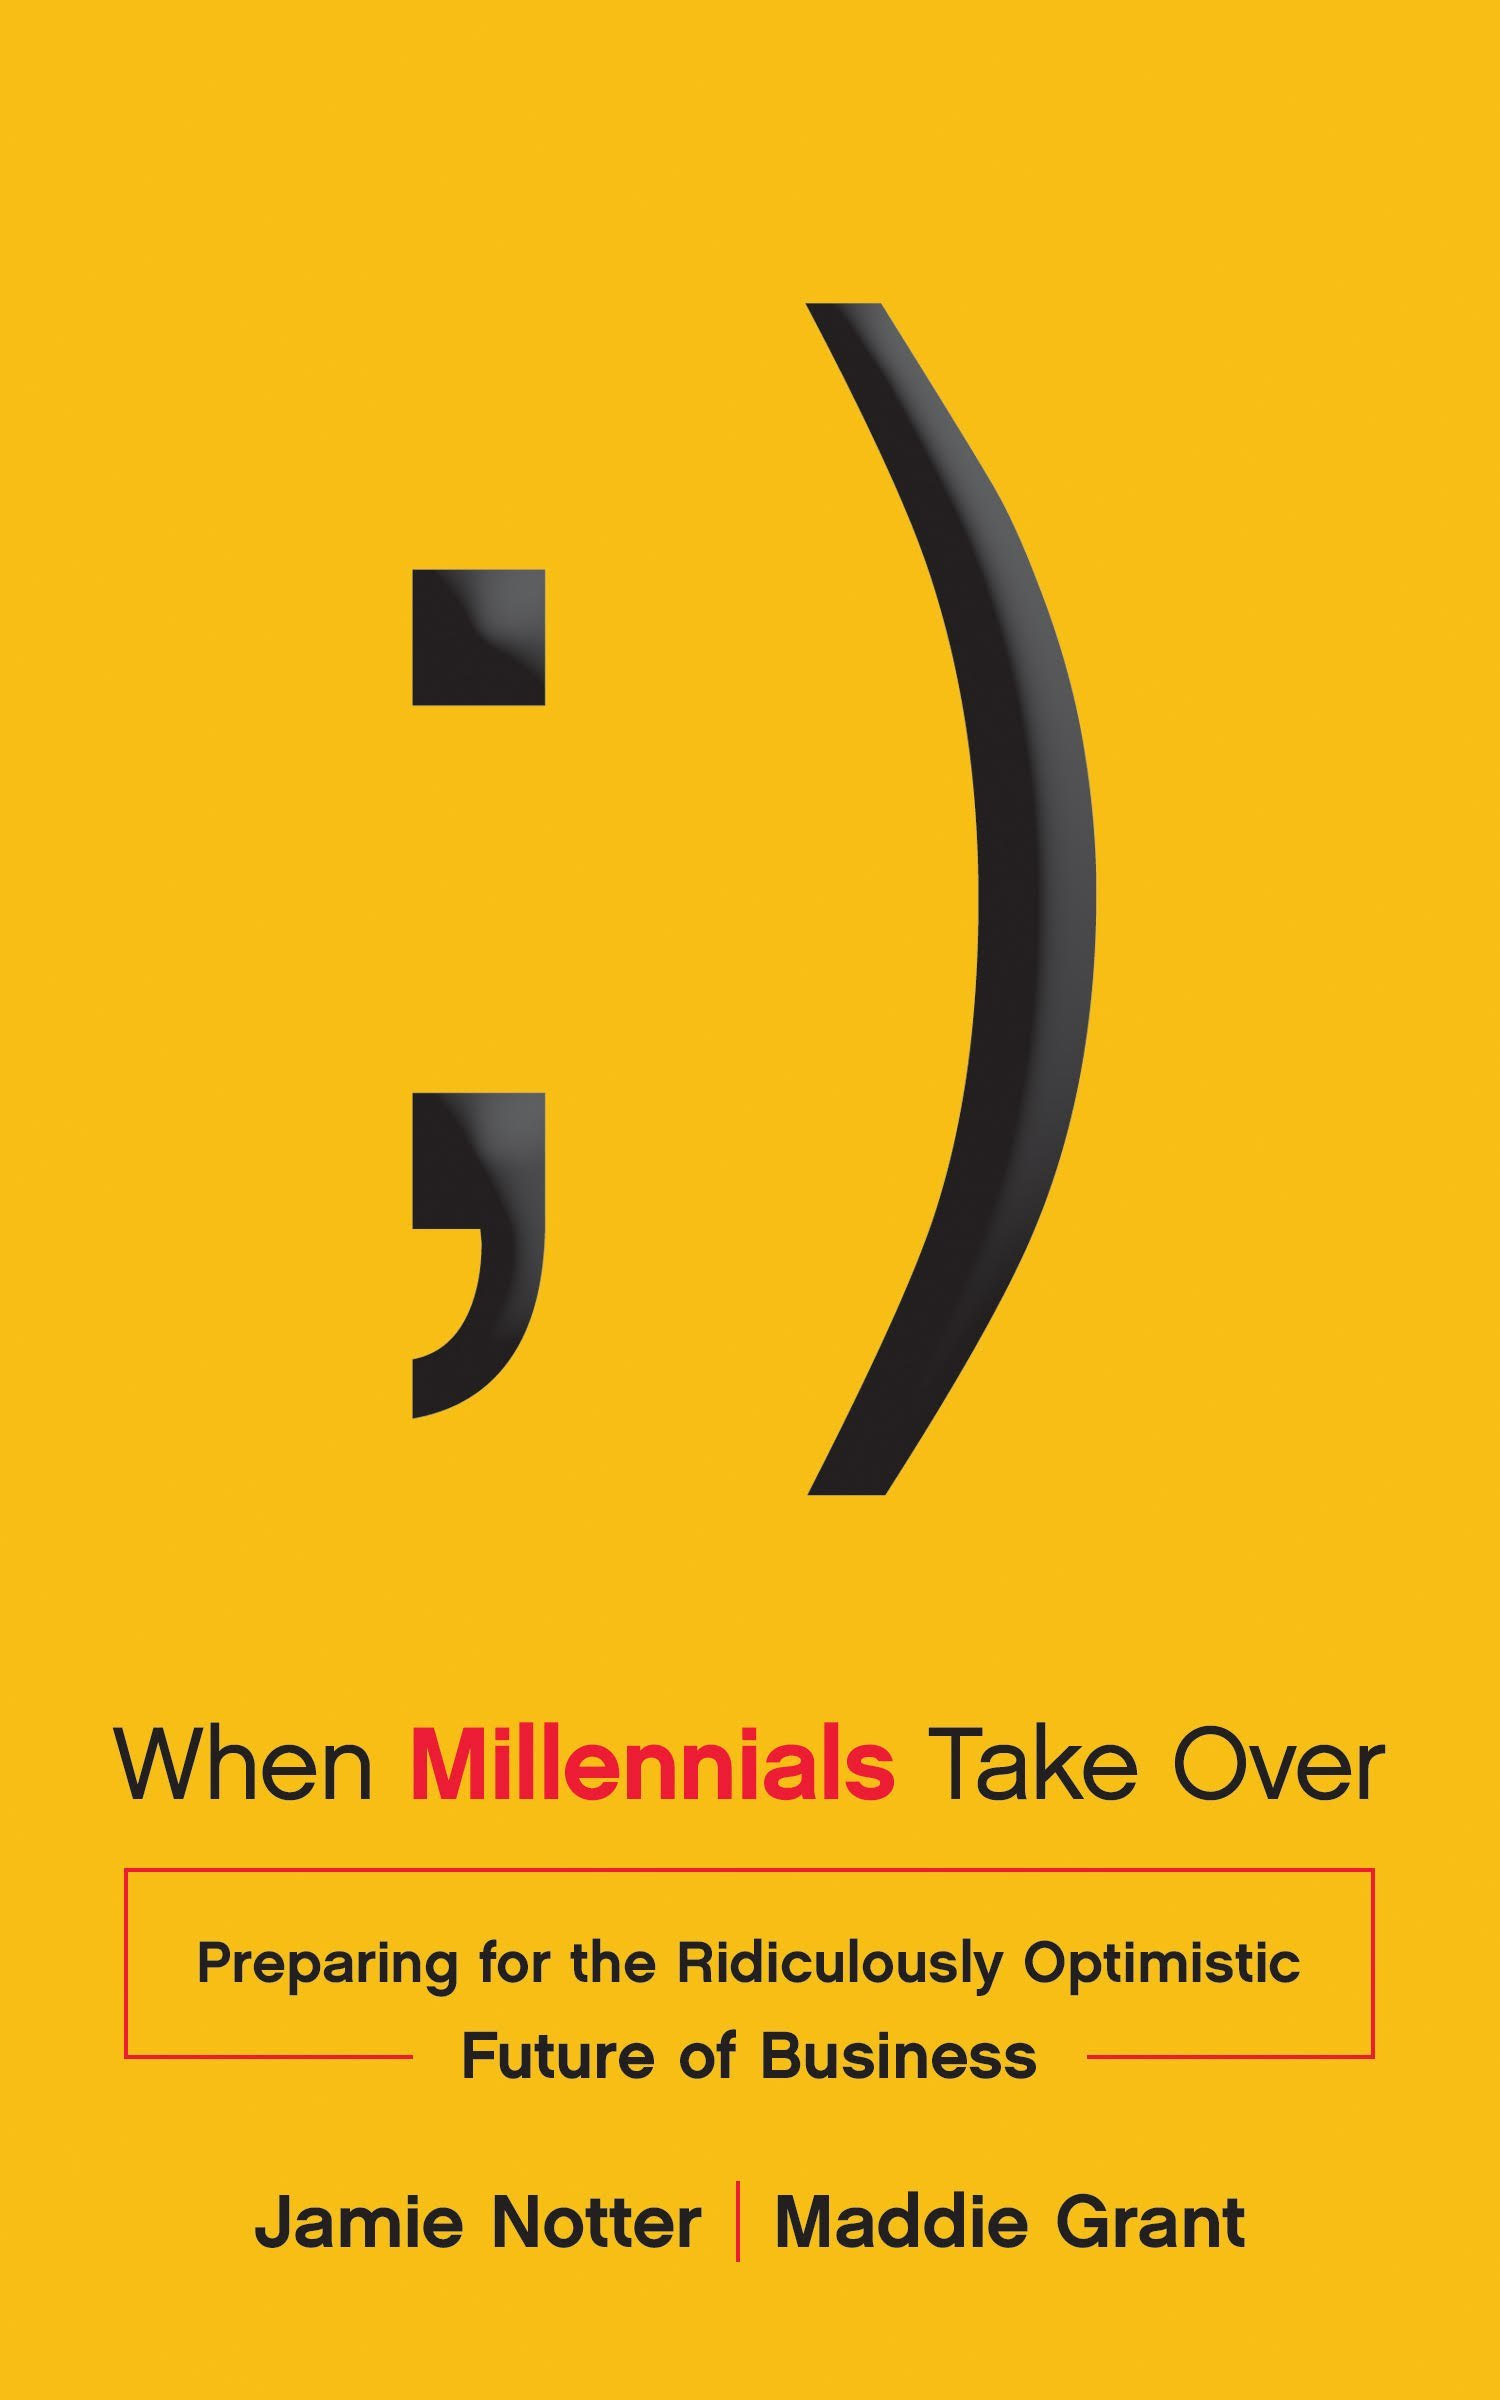 When Millennials Take Over: Preparing for the Ridiculously Optimistic Future  of Business: Jamie Notter, Maddie Grant: 9781940858128: Amazon.com: Books